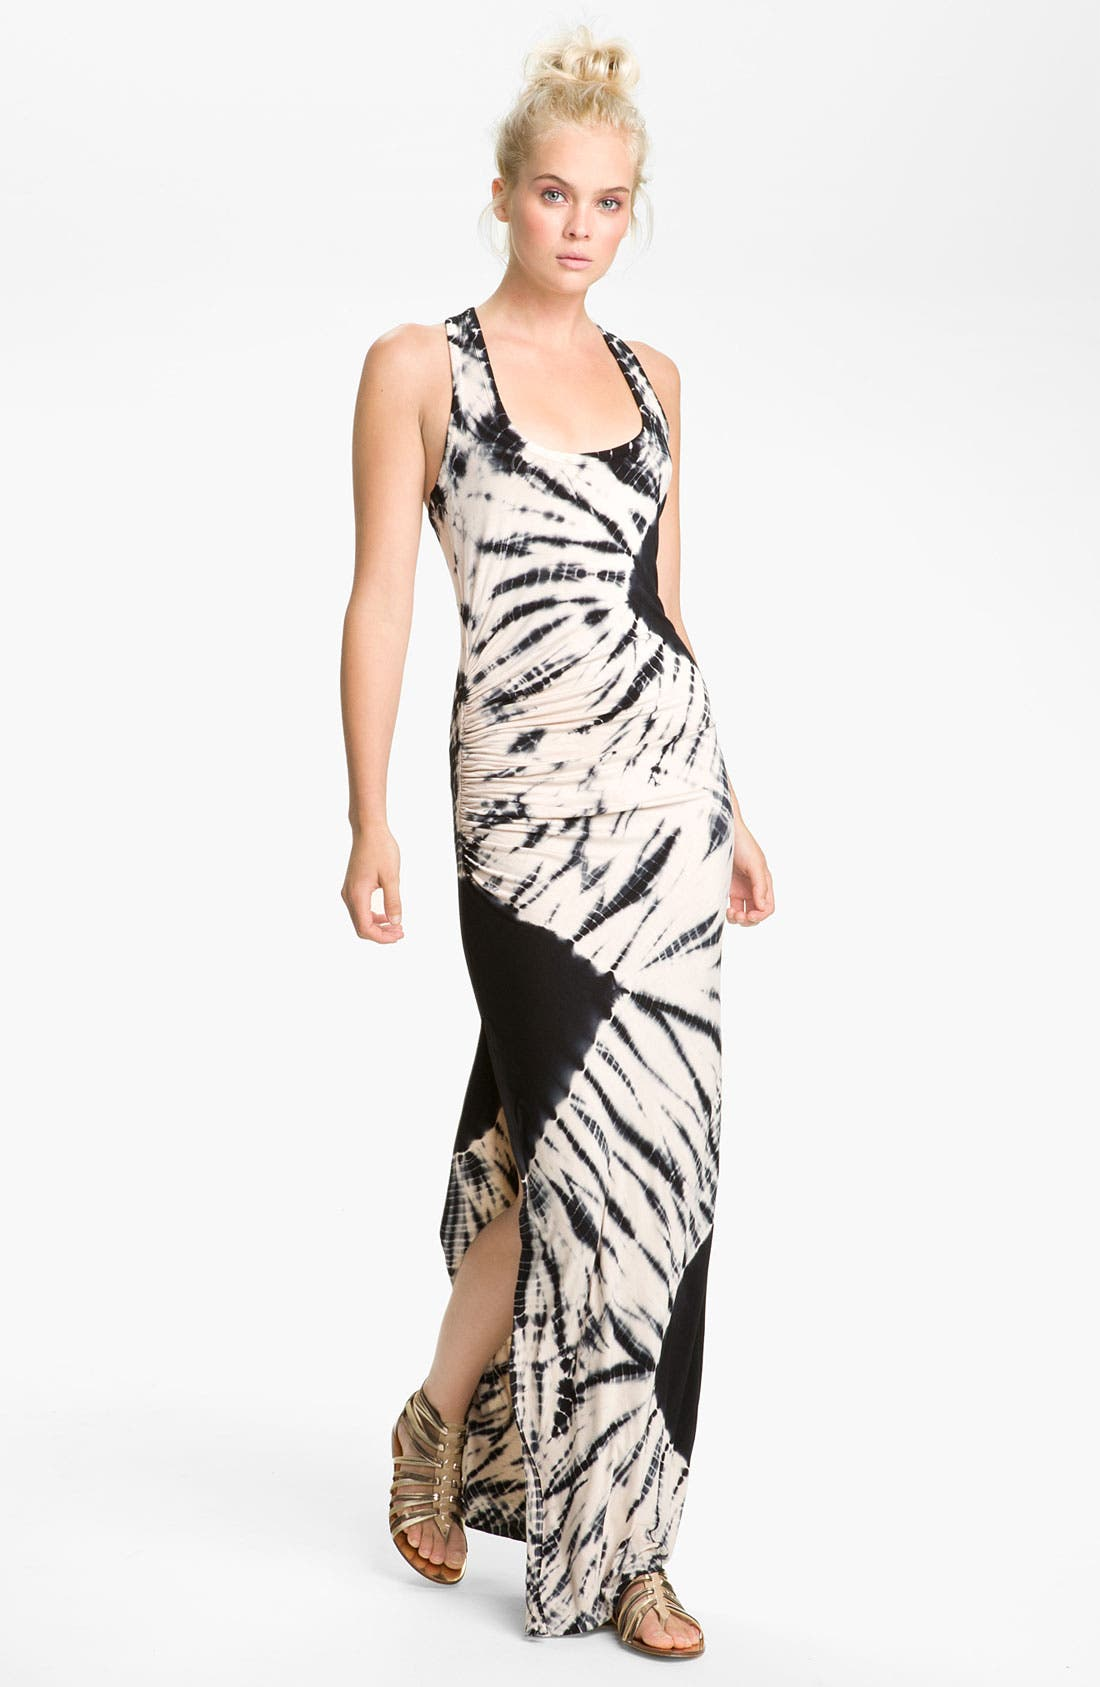 Alternate Image 1 Selected - Young, Fabulous & Broke 'Maelle' Tie Dye Maxi Dress